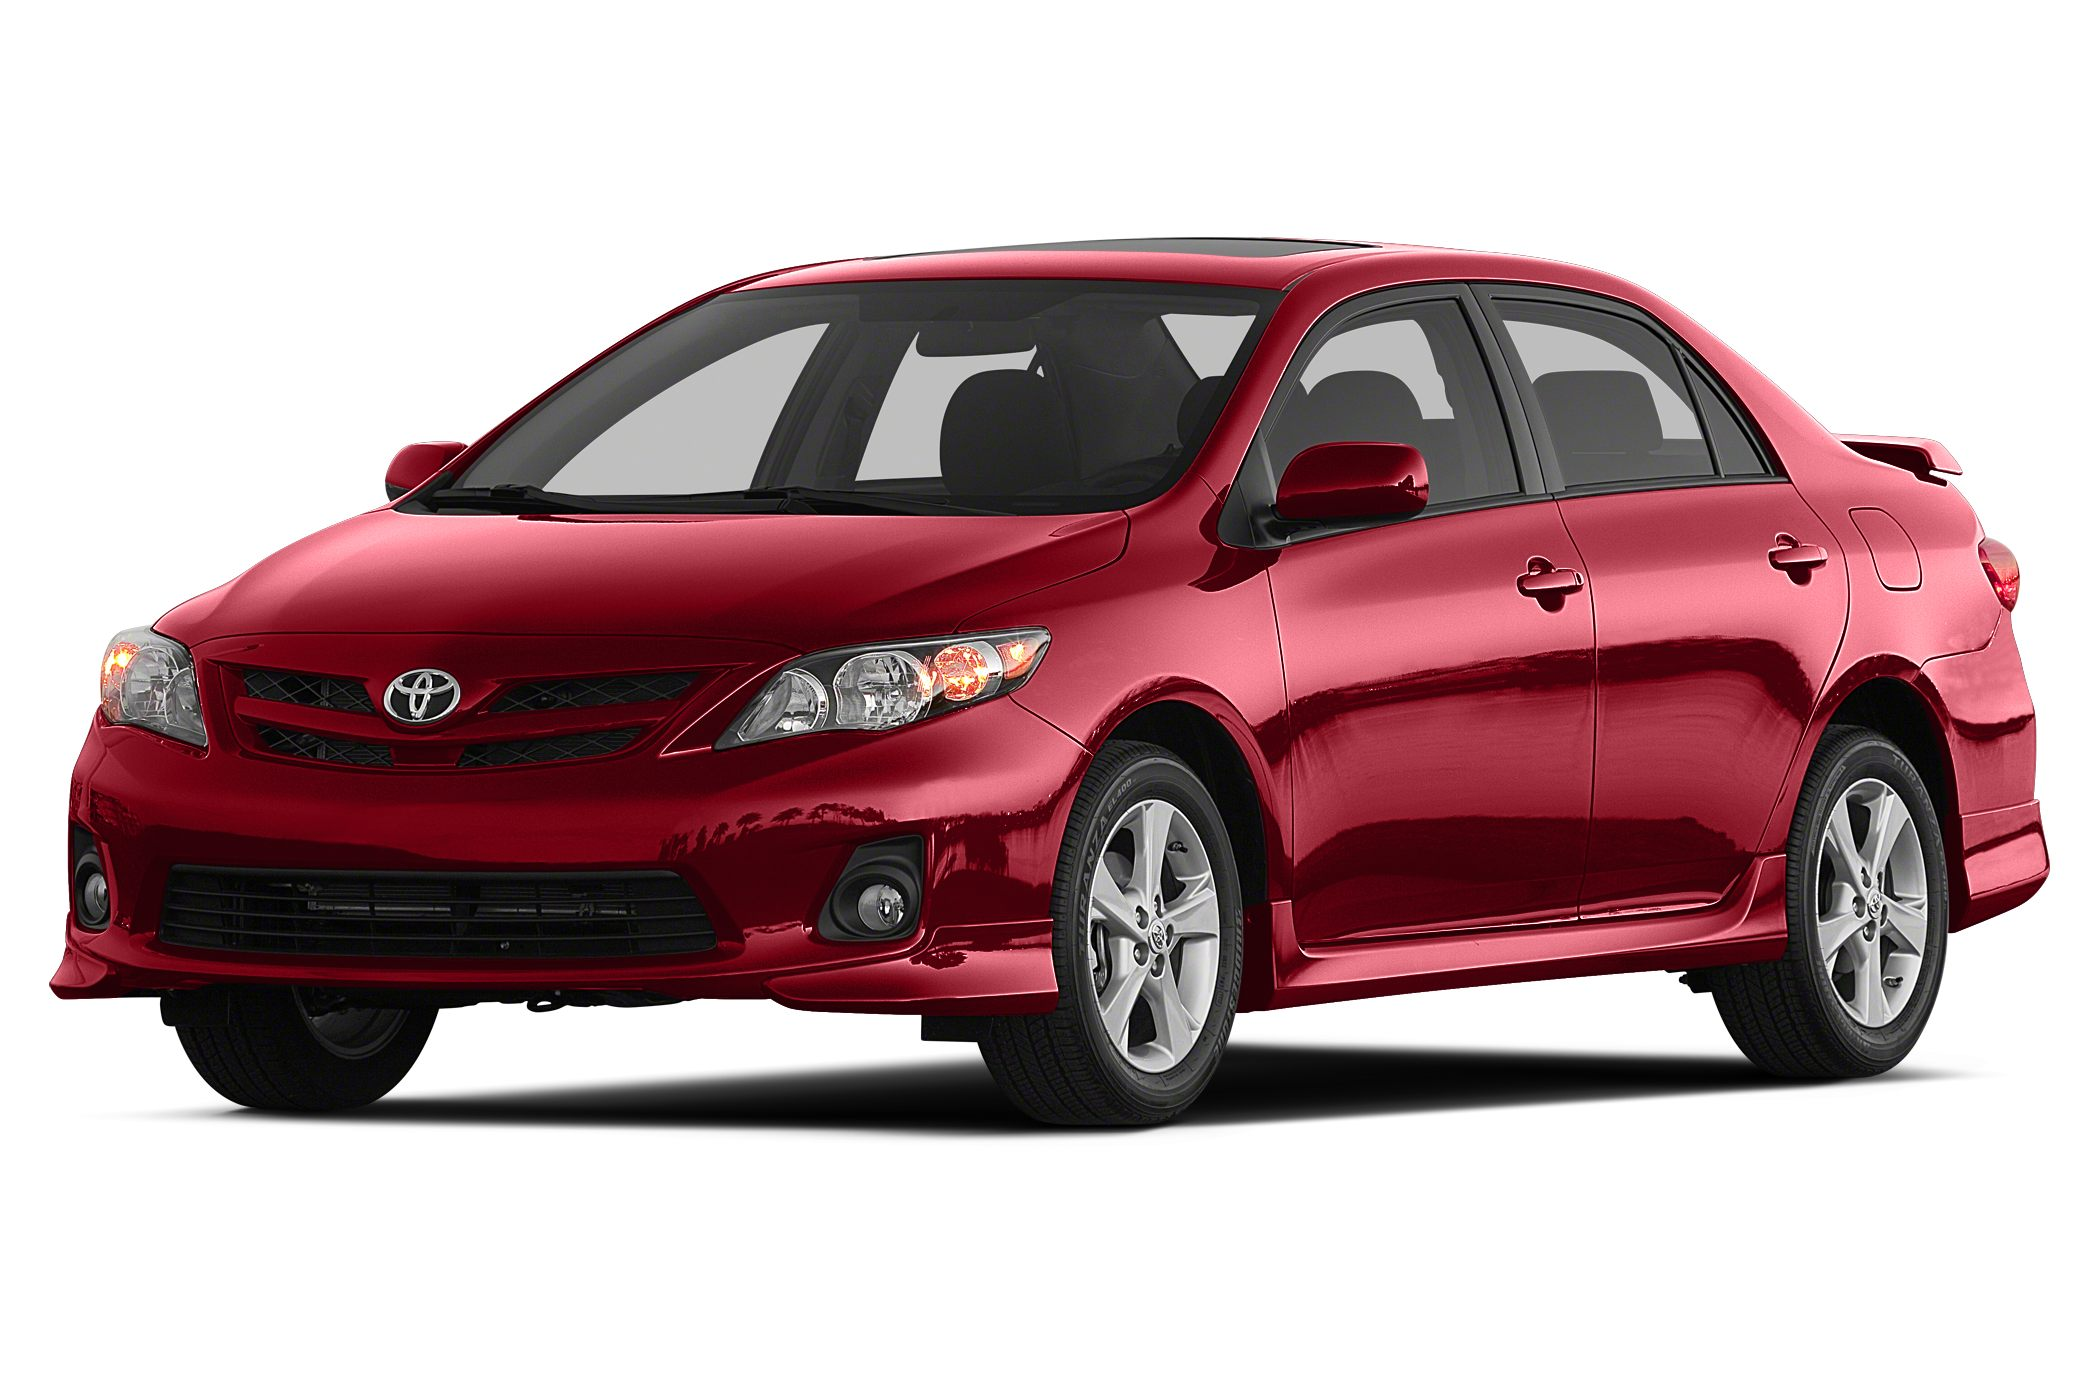 2012 Toyota Corolla S Sedan for sale in Buckhannon for $16,999 with 24,013 miles